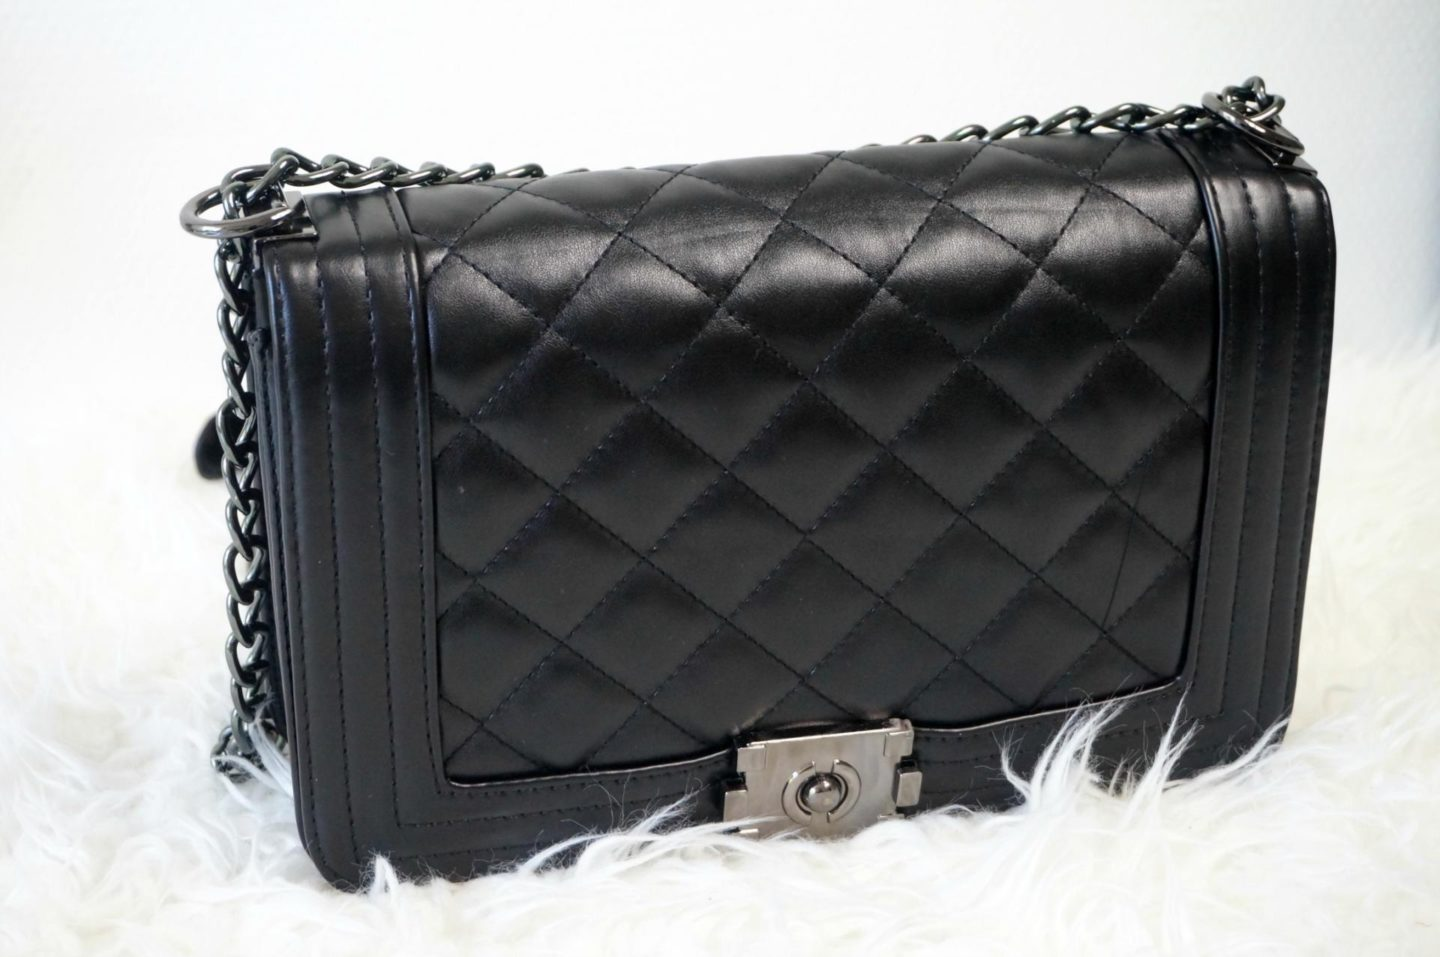 f9d351d4b63 Chanel inspired: Quilted Chain bag - BeautyOpinie